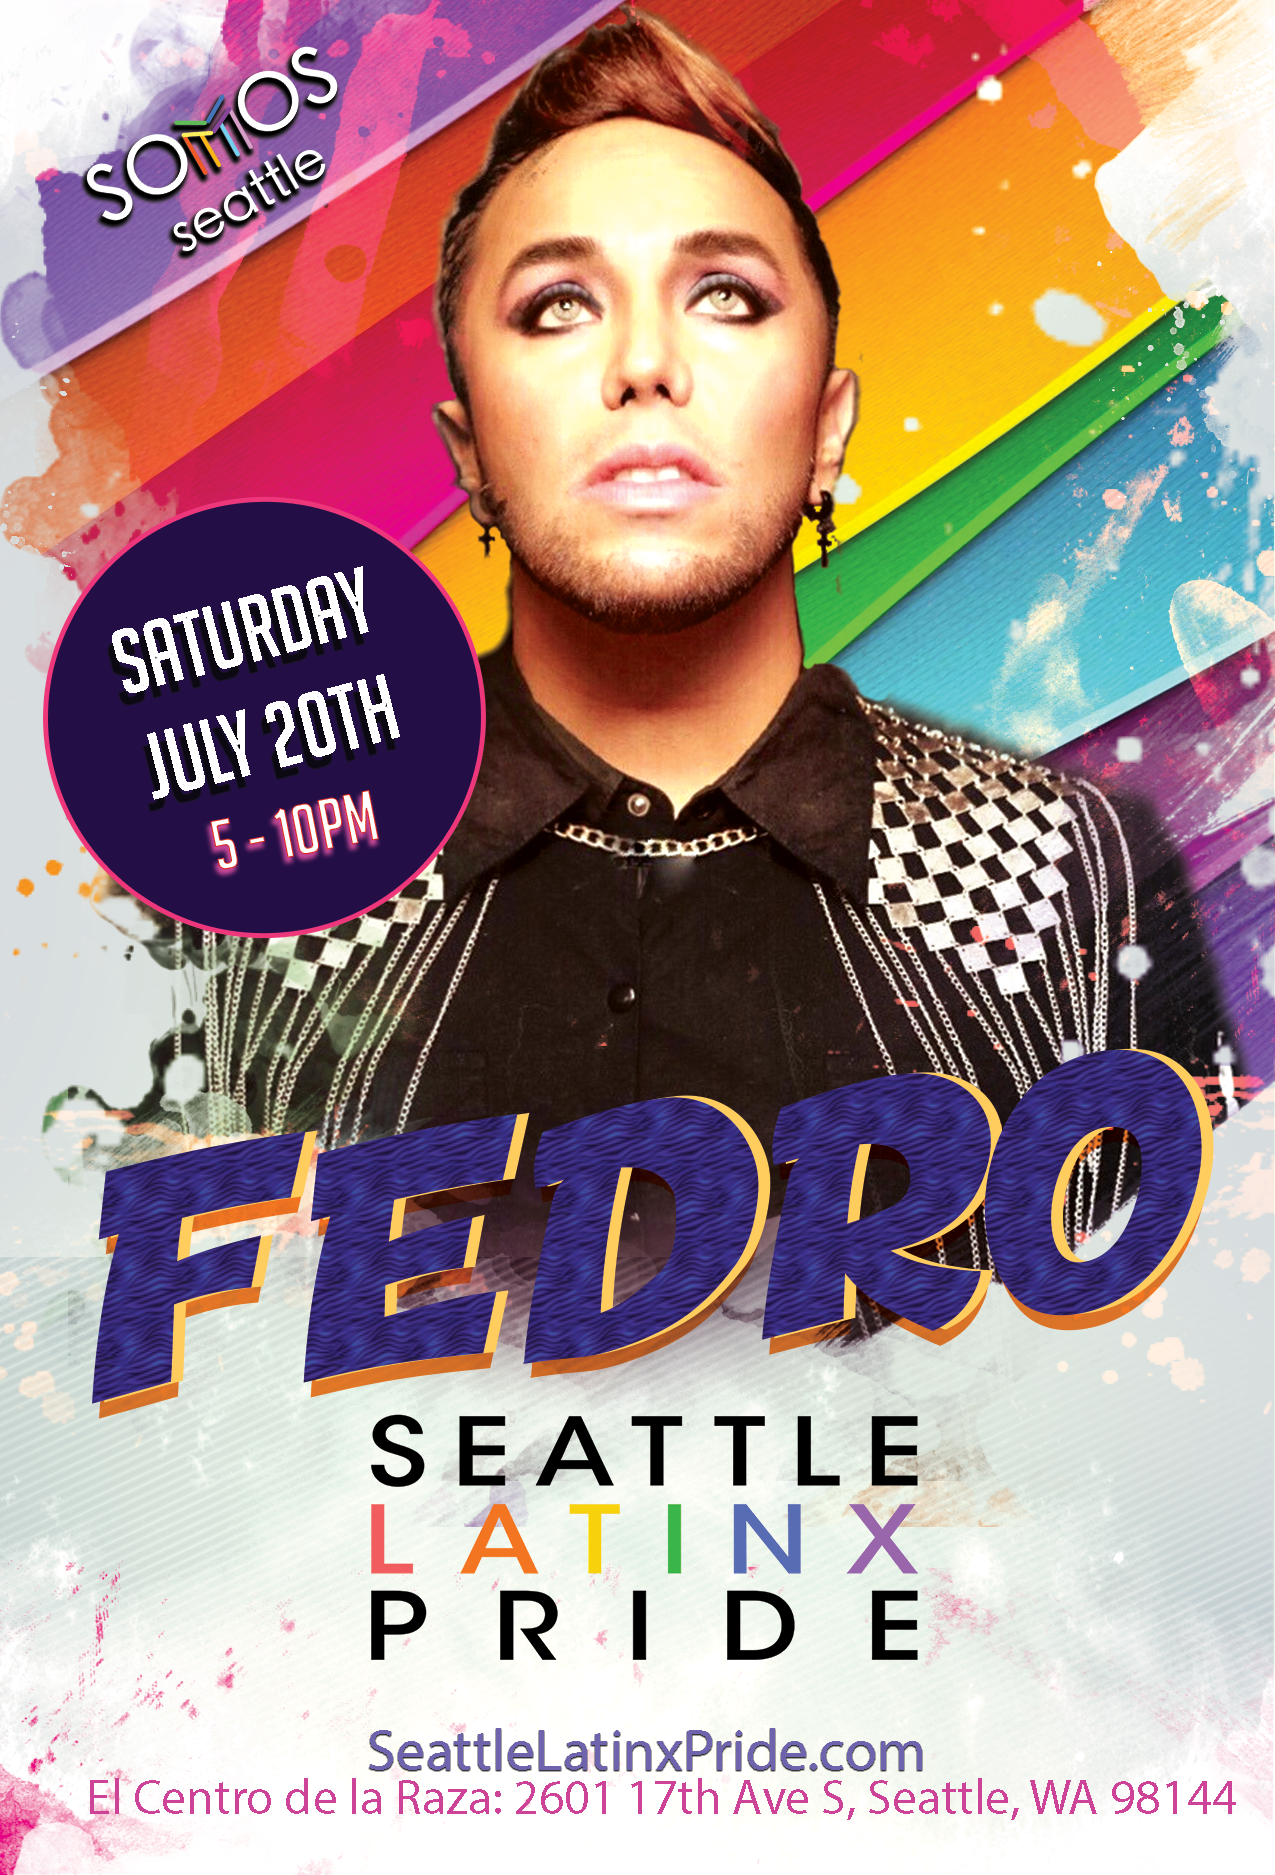 Seattle Latinx Pride 19 Fedro.png